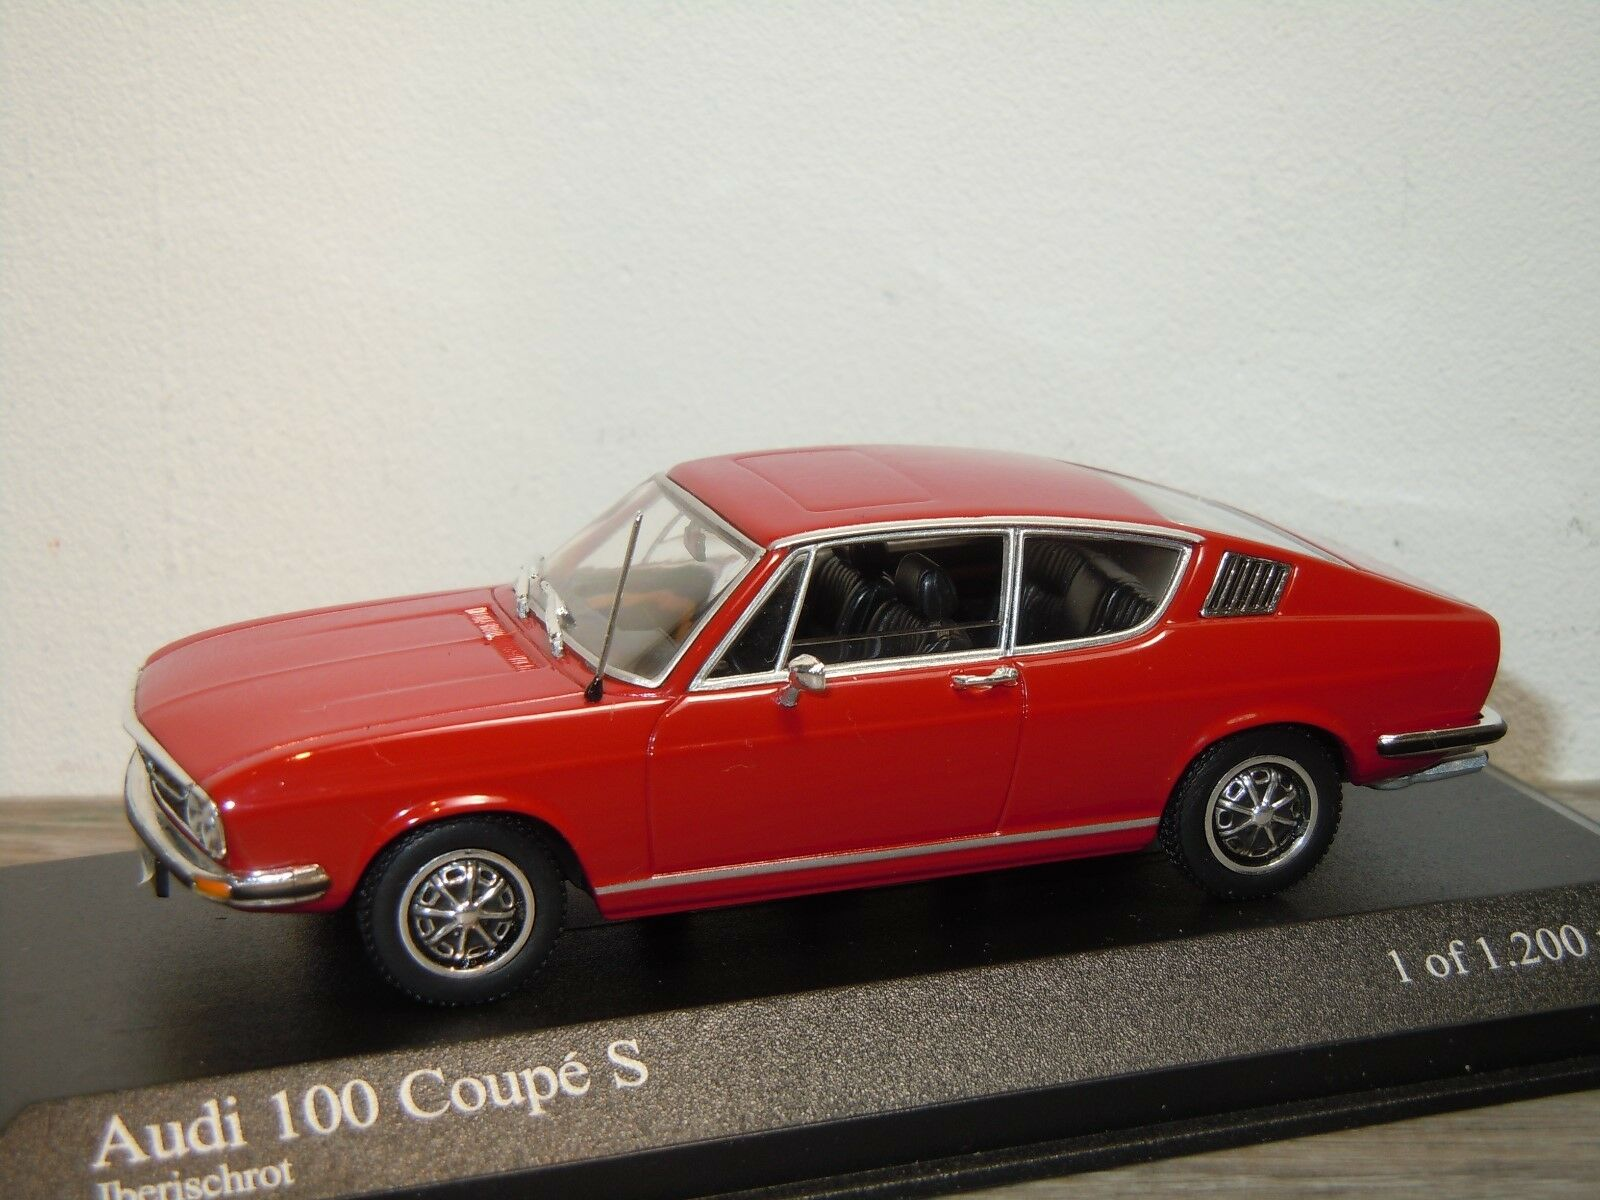 Audi 100 coupé s 1969 ­ 75 - minichamps 1 43 in kasten  34329